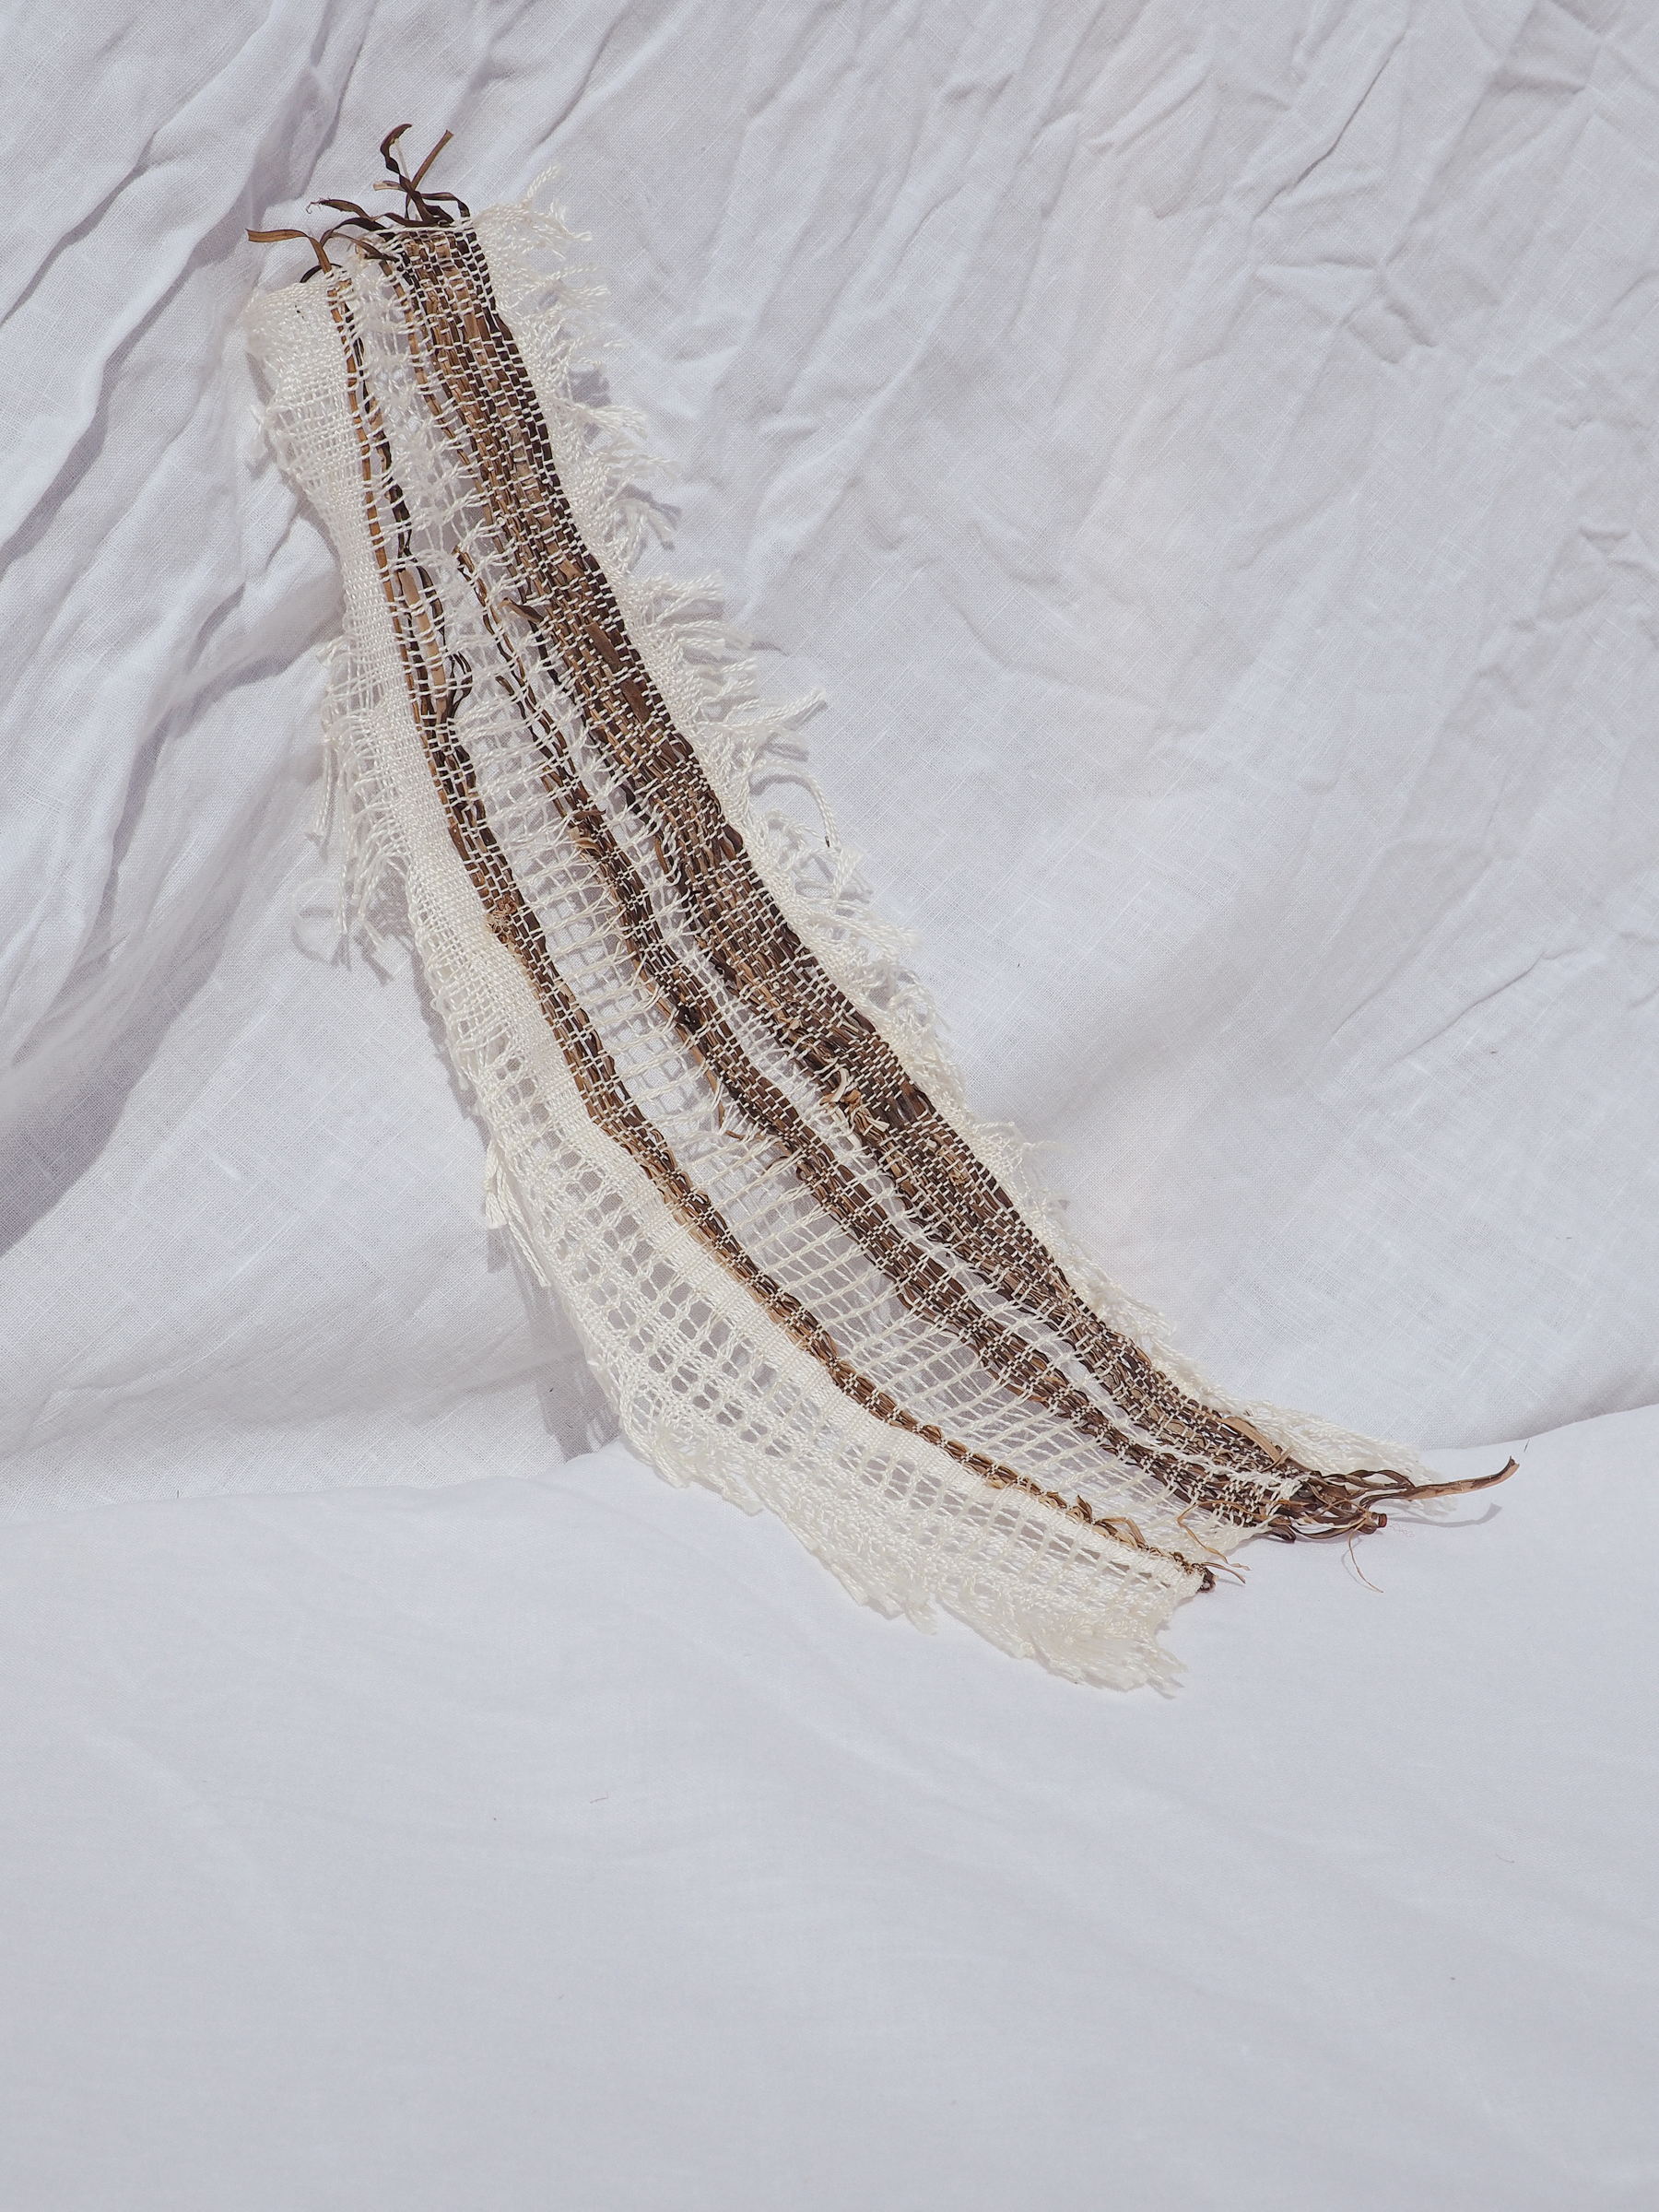 Seaweed and Silk 02, handwoven by Rachel and available on our online store.